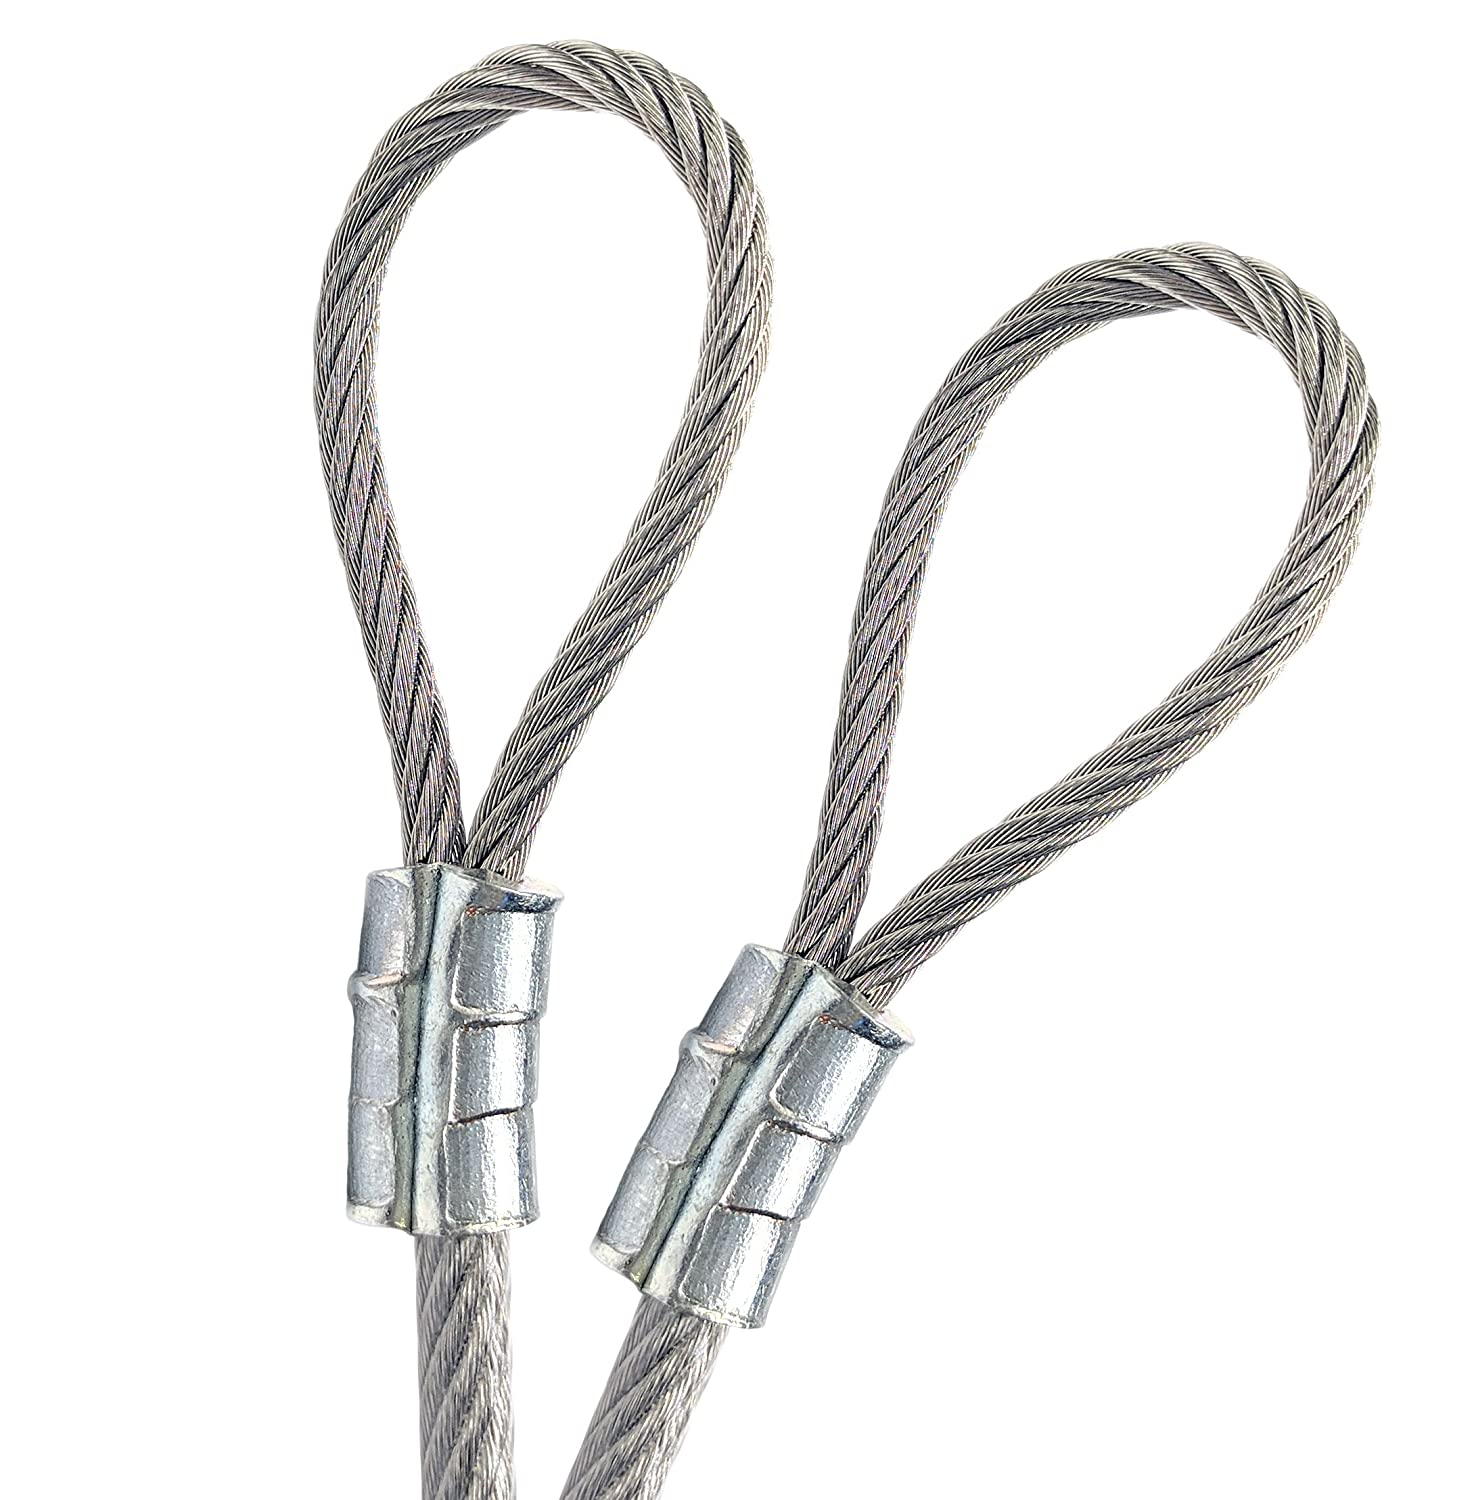 1//4 Vinyl Coated Galvanized Steel Cable with Looped Ends 3//16 Core Diameter 15 feet, Clear 7x19 Braids Flexible Multi-Purpose DIY Outdoor Safety Guide Wire Rope PSI